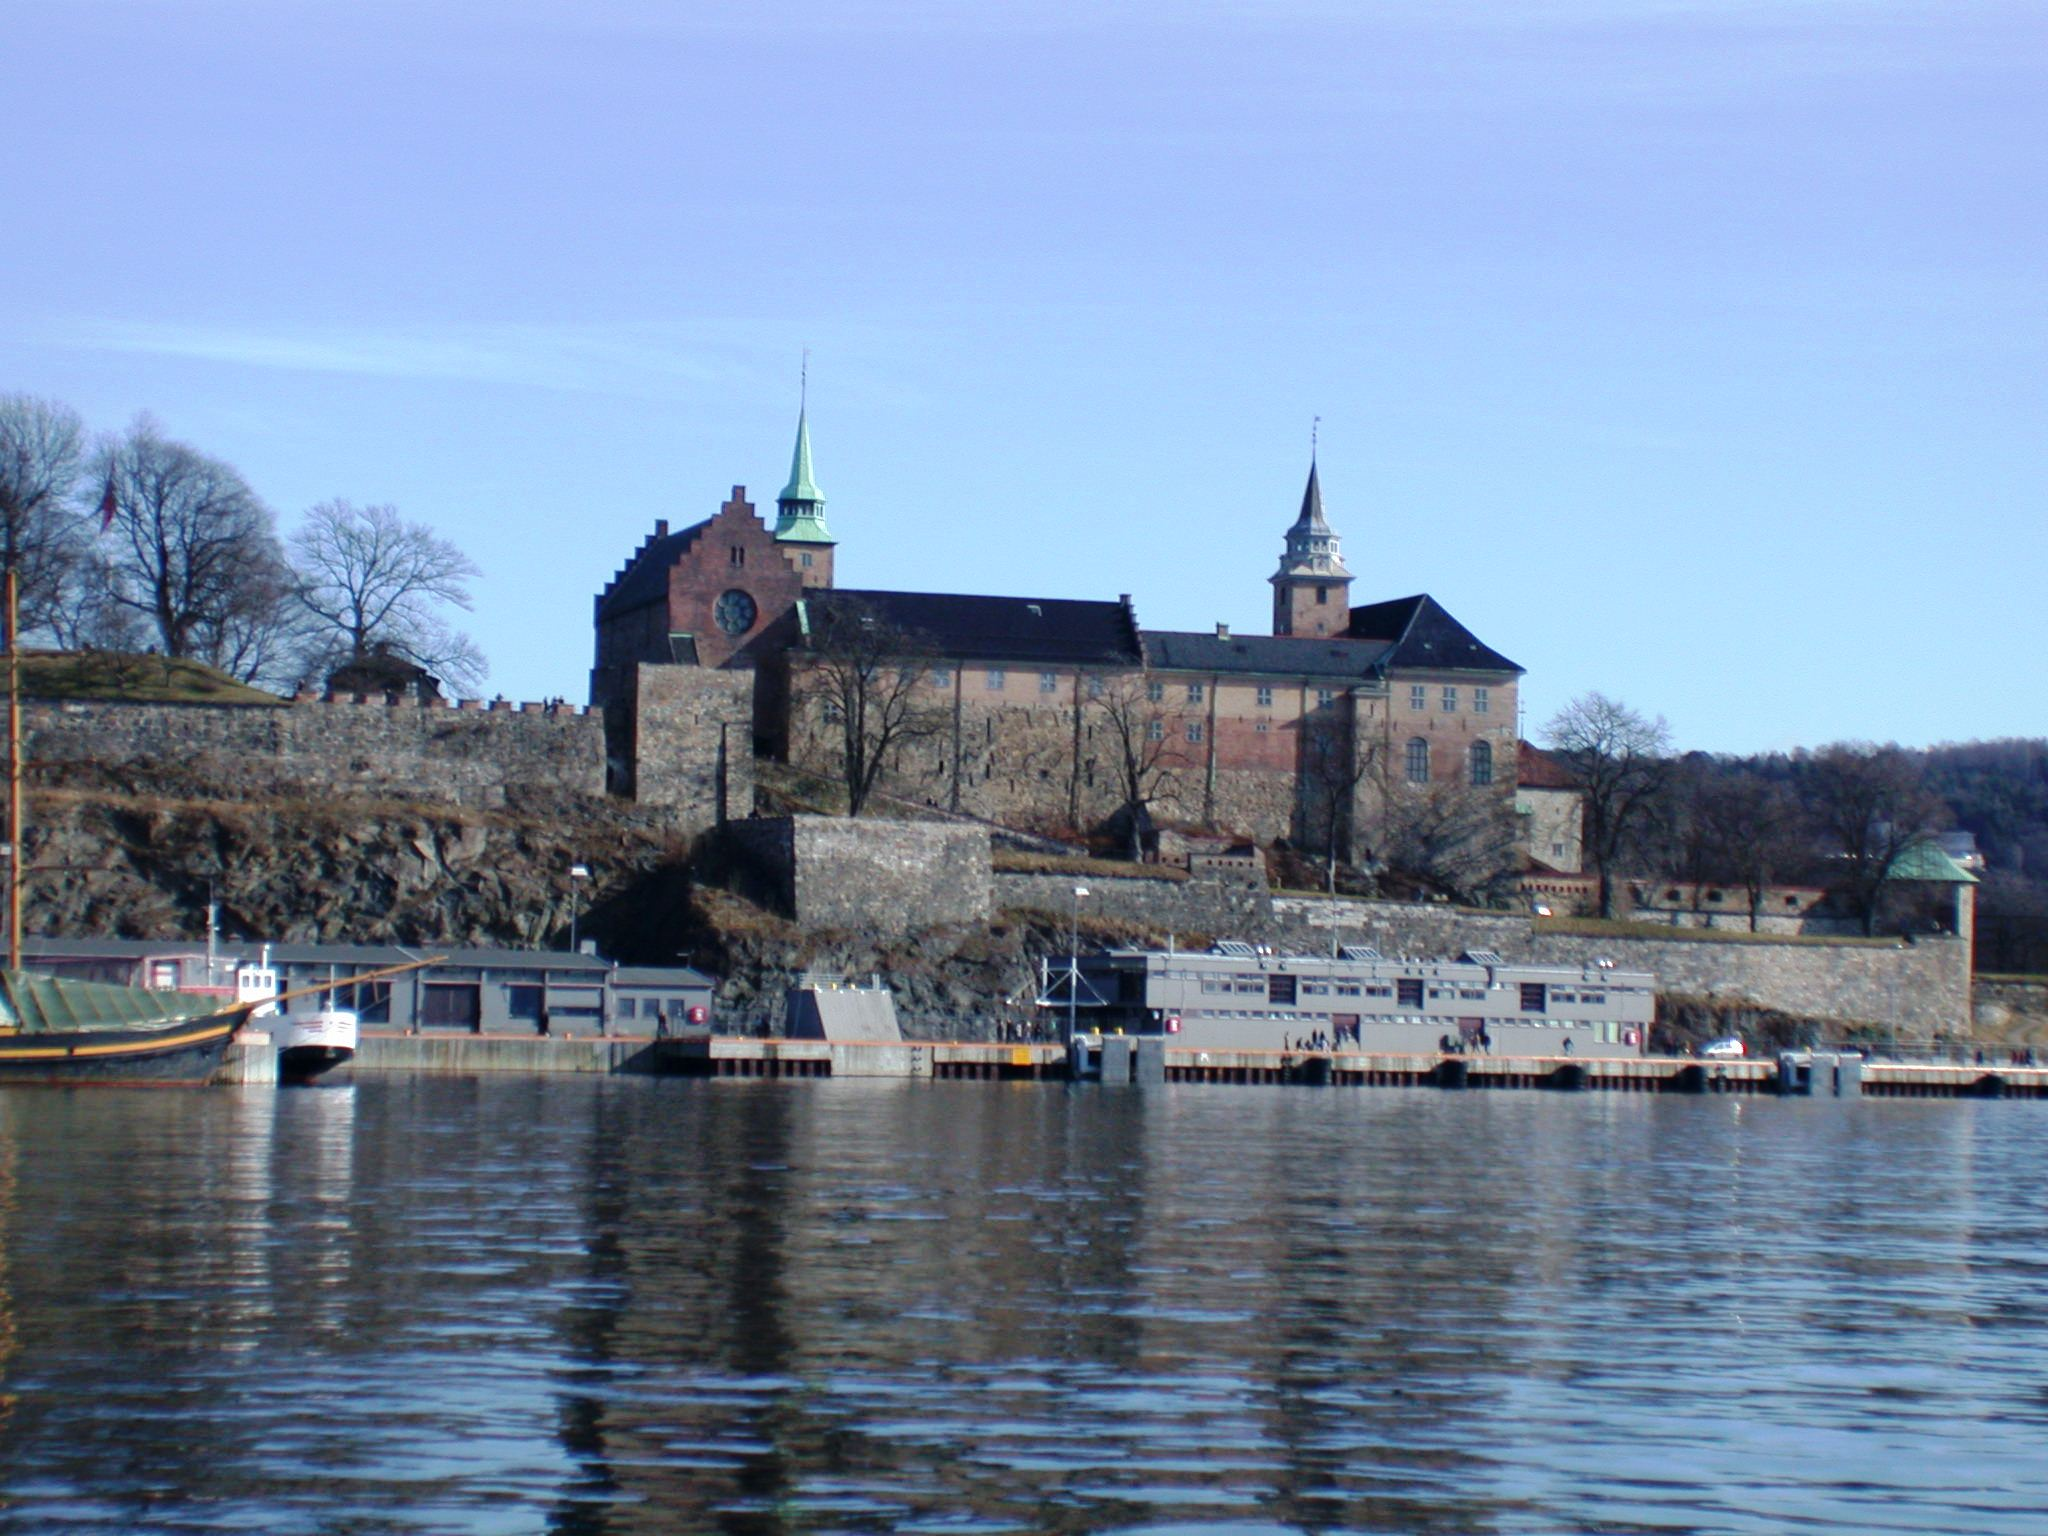 File Akershus castle Oslo Norway 005 on true